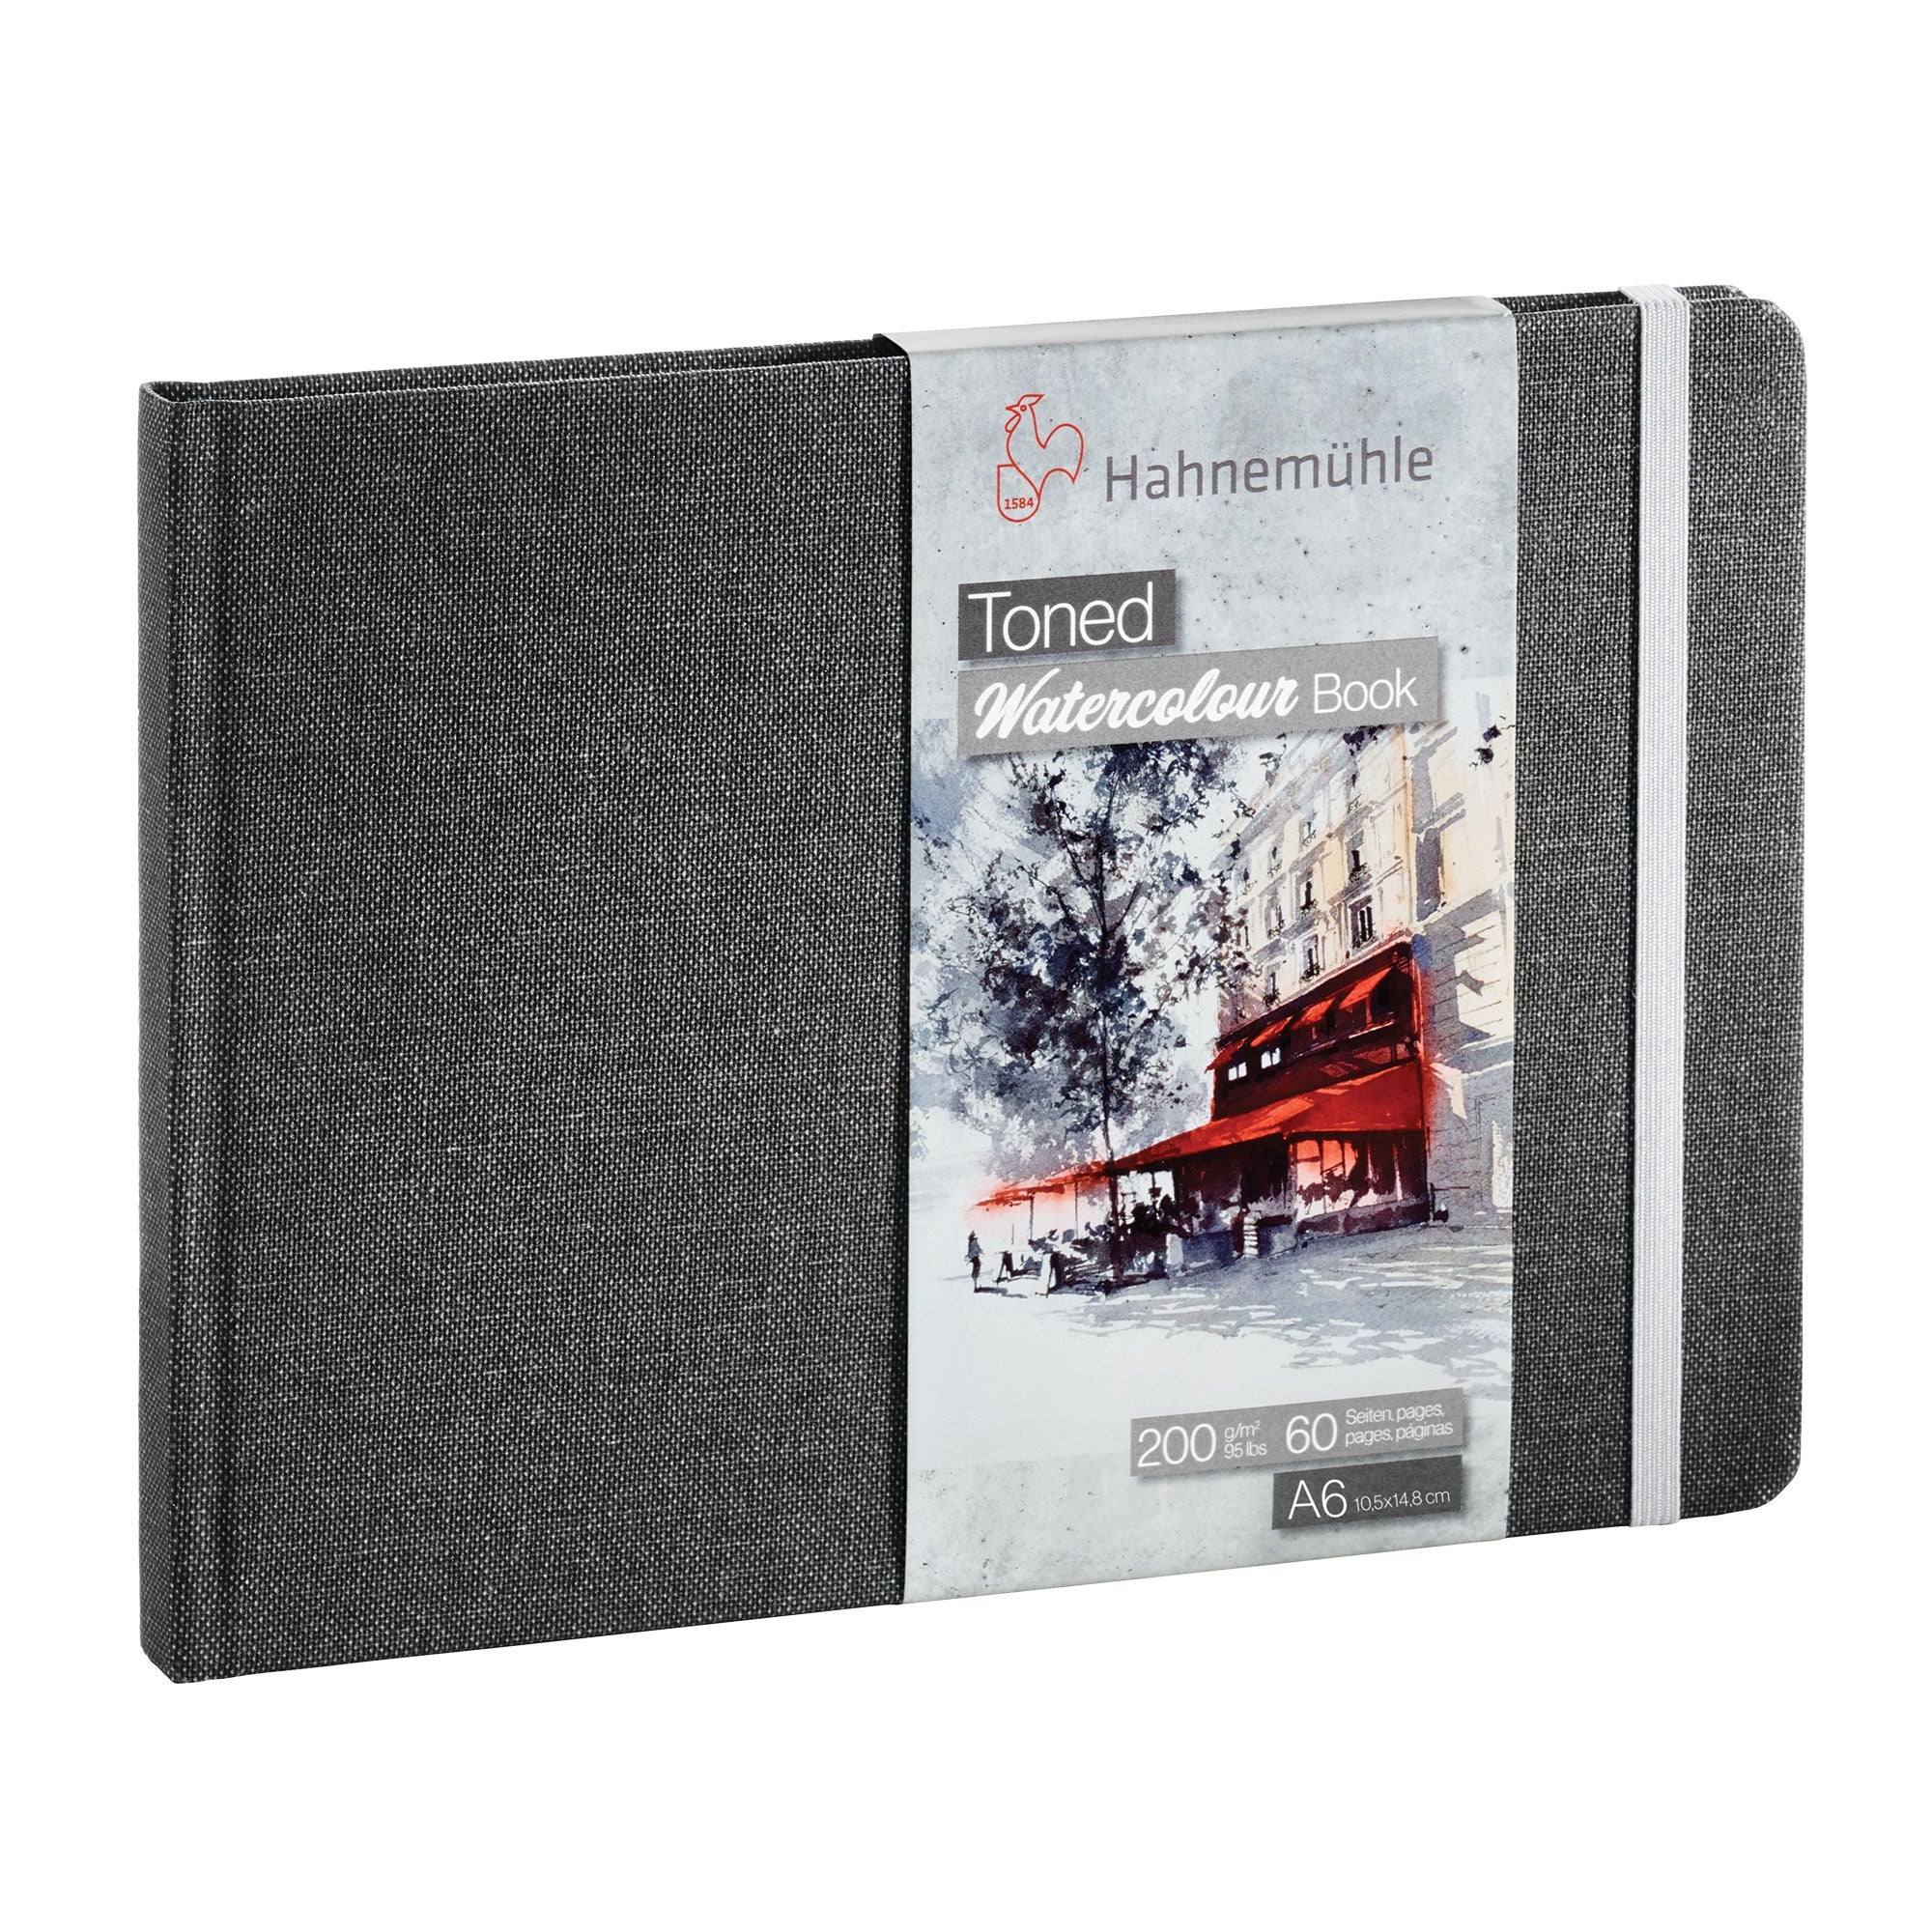 Hahnemühle 'Toned' Watercolour Books - Grey 200gsm (95lb)